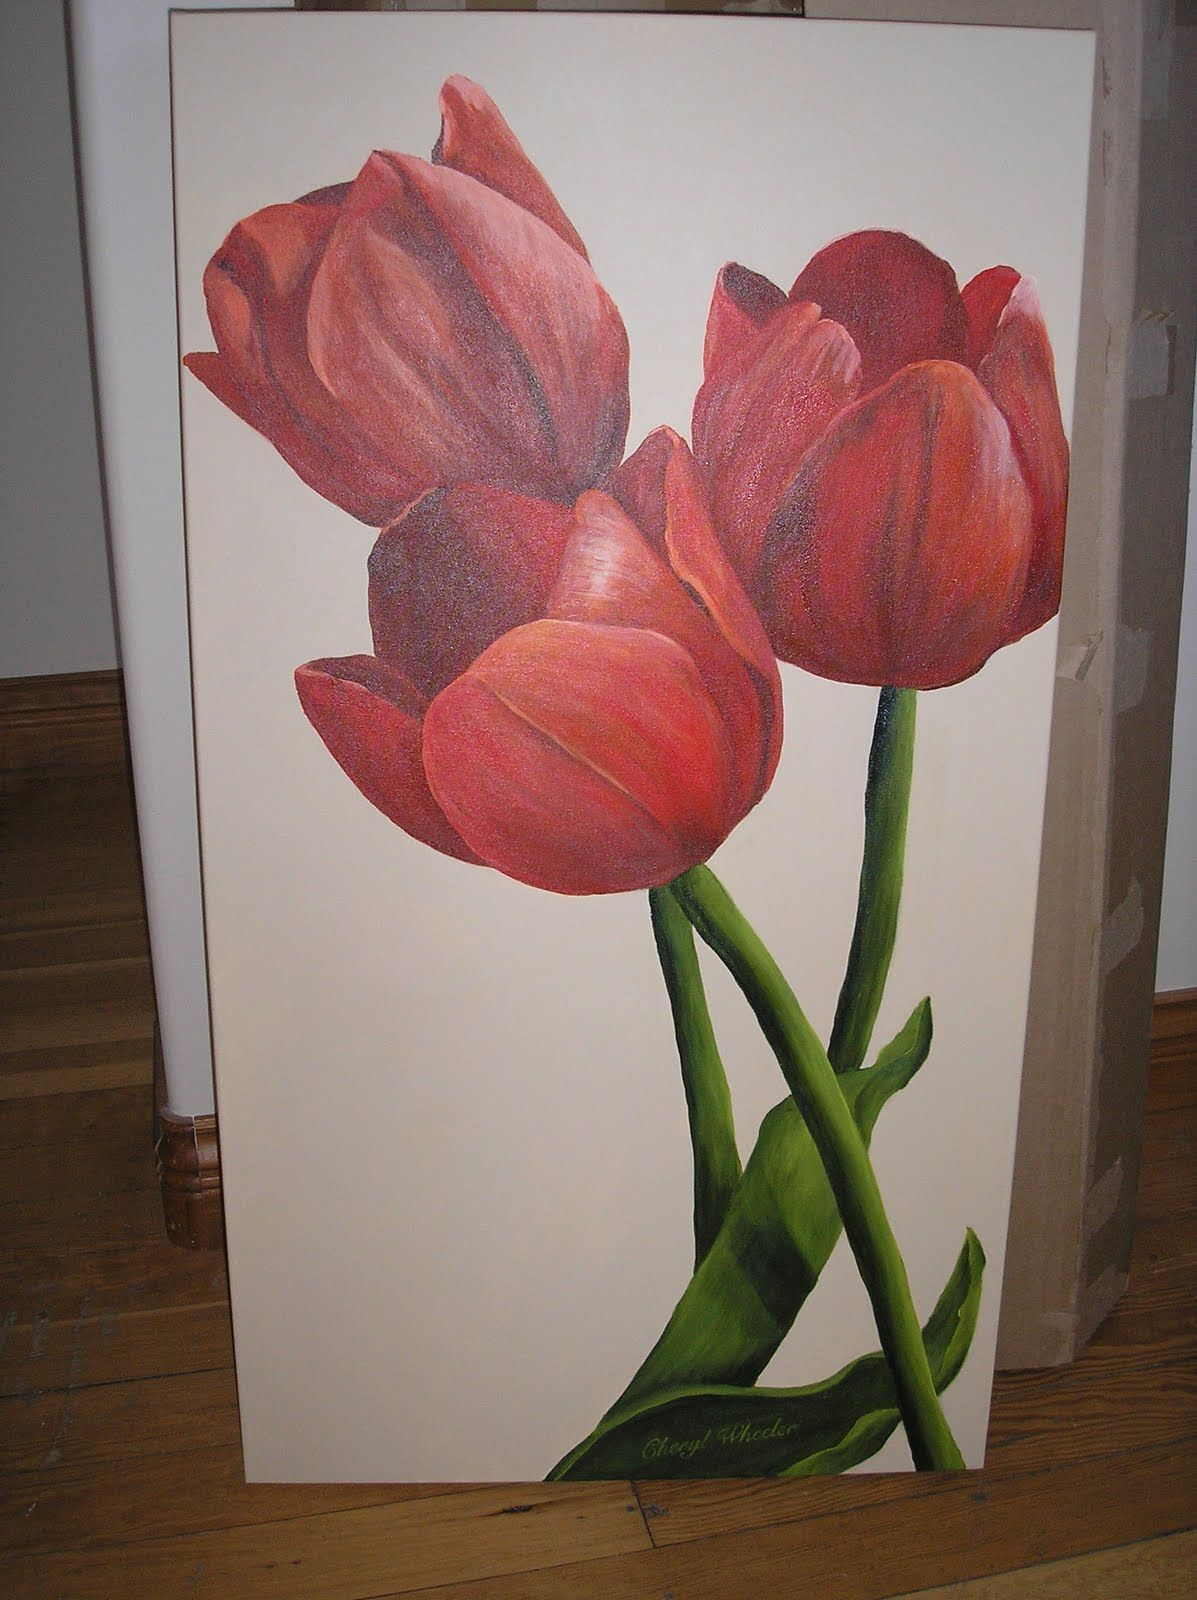 15 Marvelous Interior Painting Projects Ideas Tulip Painting Flower Painting Flower Art